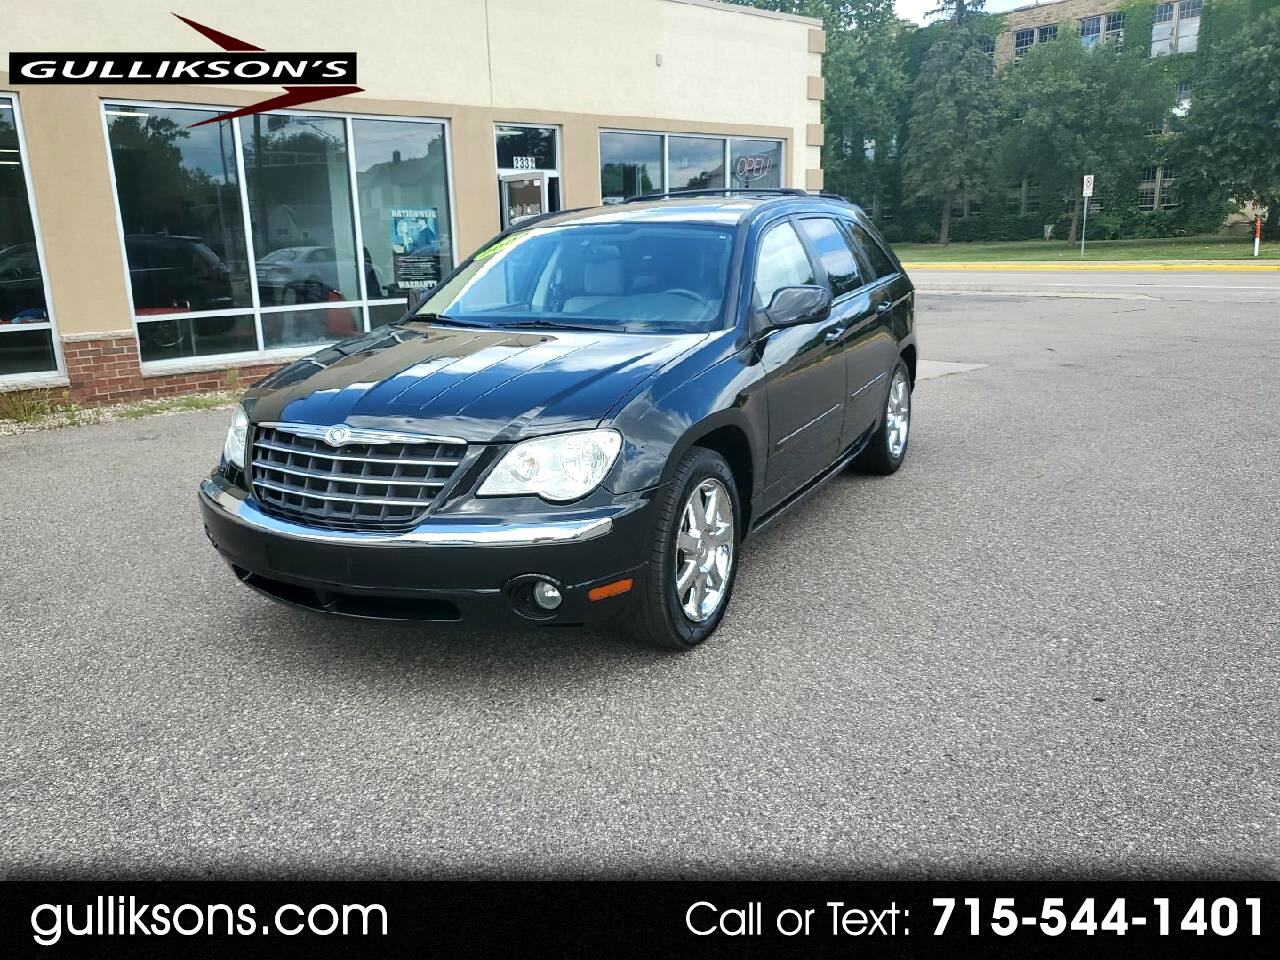 Chrysler Pacifica 4dr Wgn Limited FWD 2008